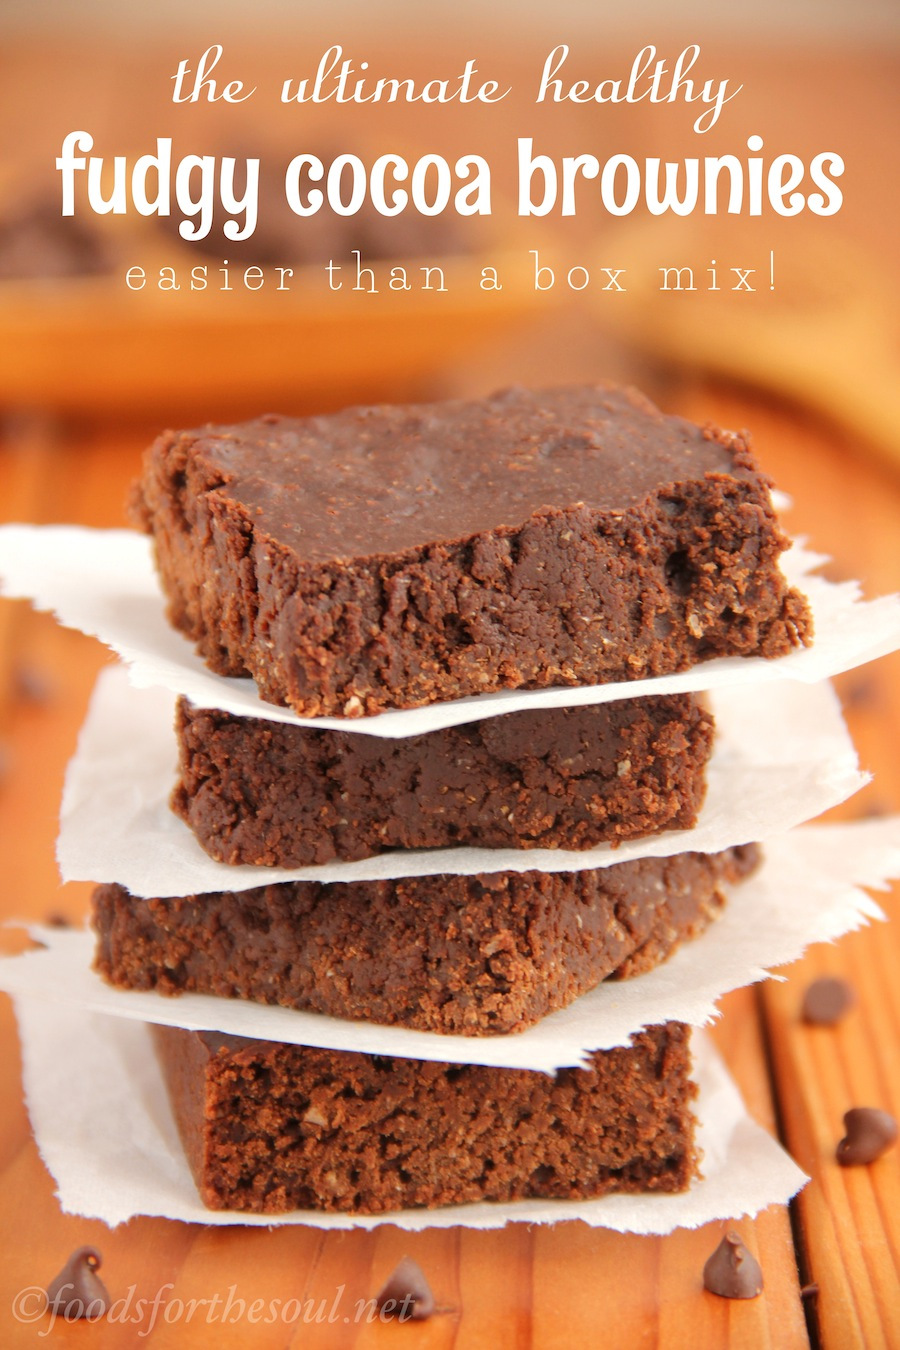 The Ultimate Healthy Fudgy Cocoa Brownies